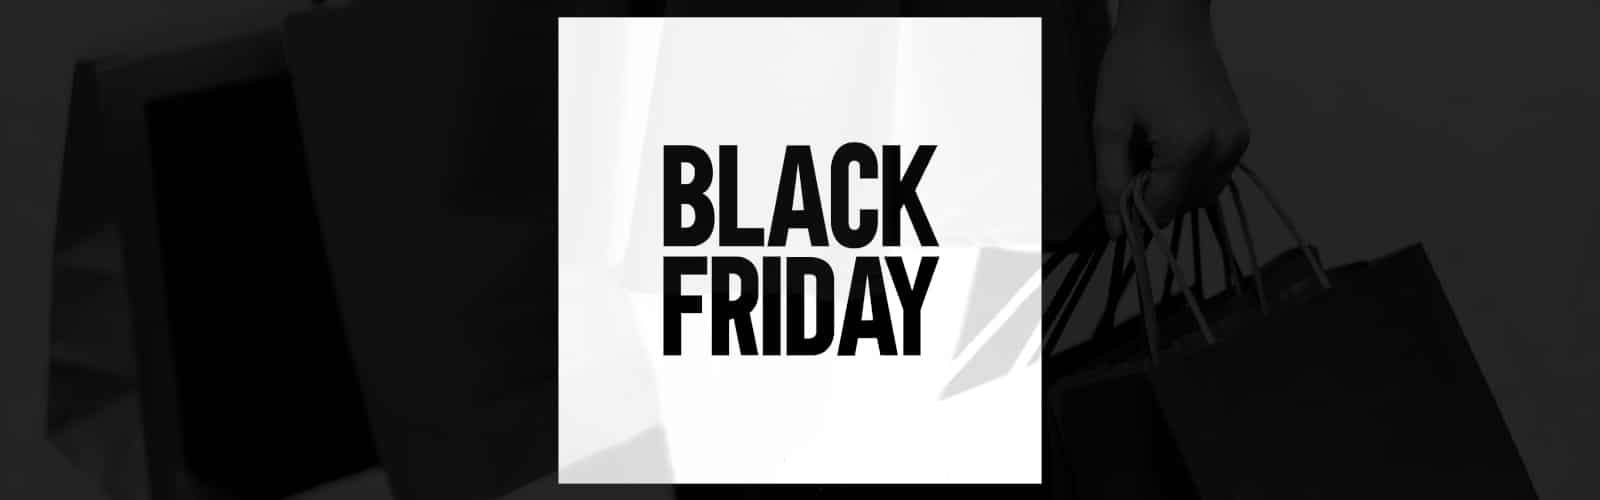 Black Friday : comment booster ses ventes via une campagne SMS